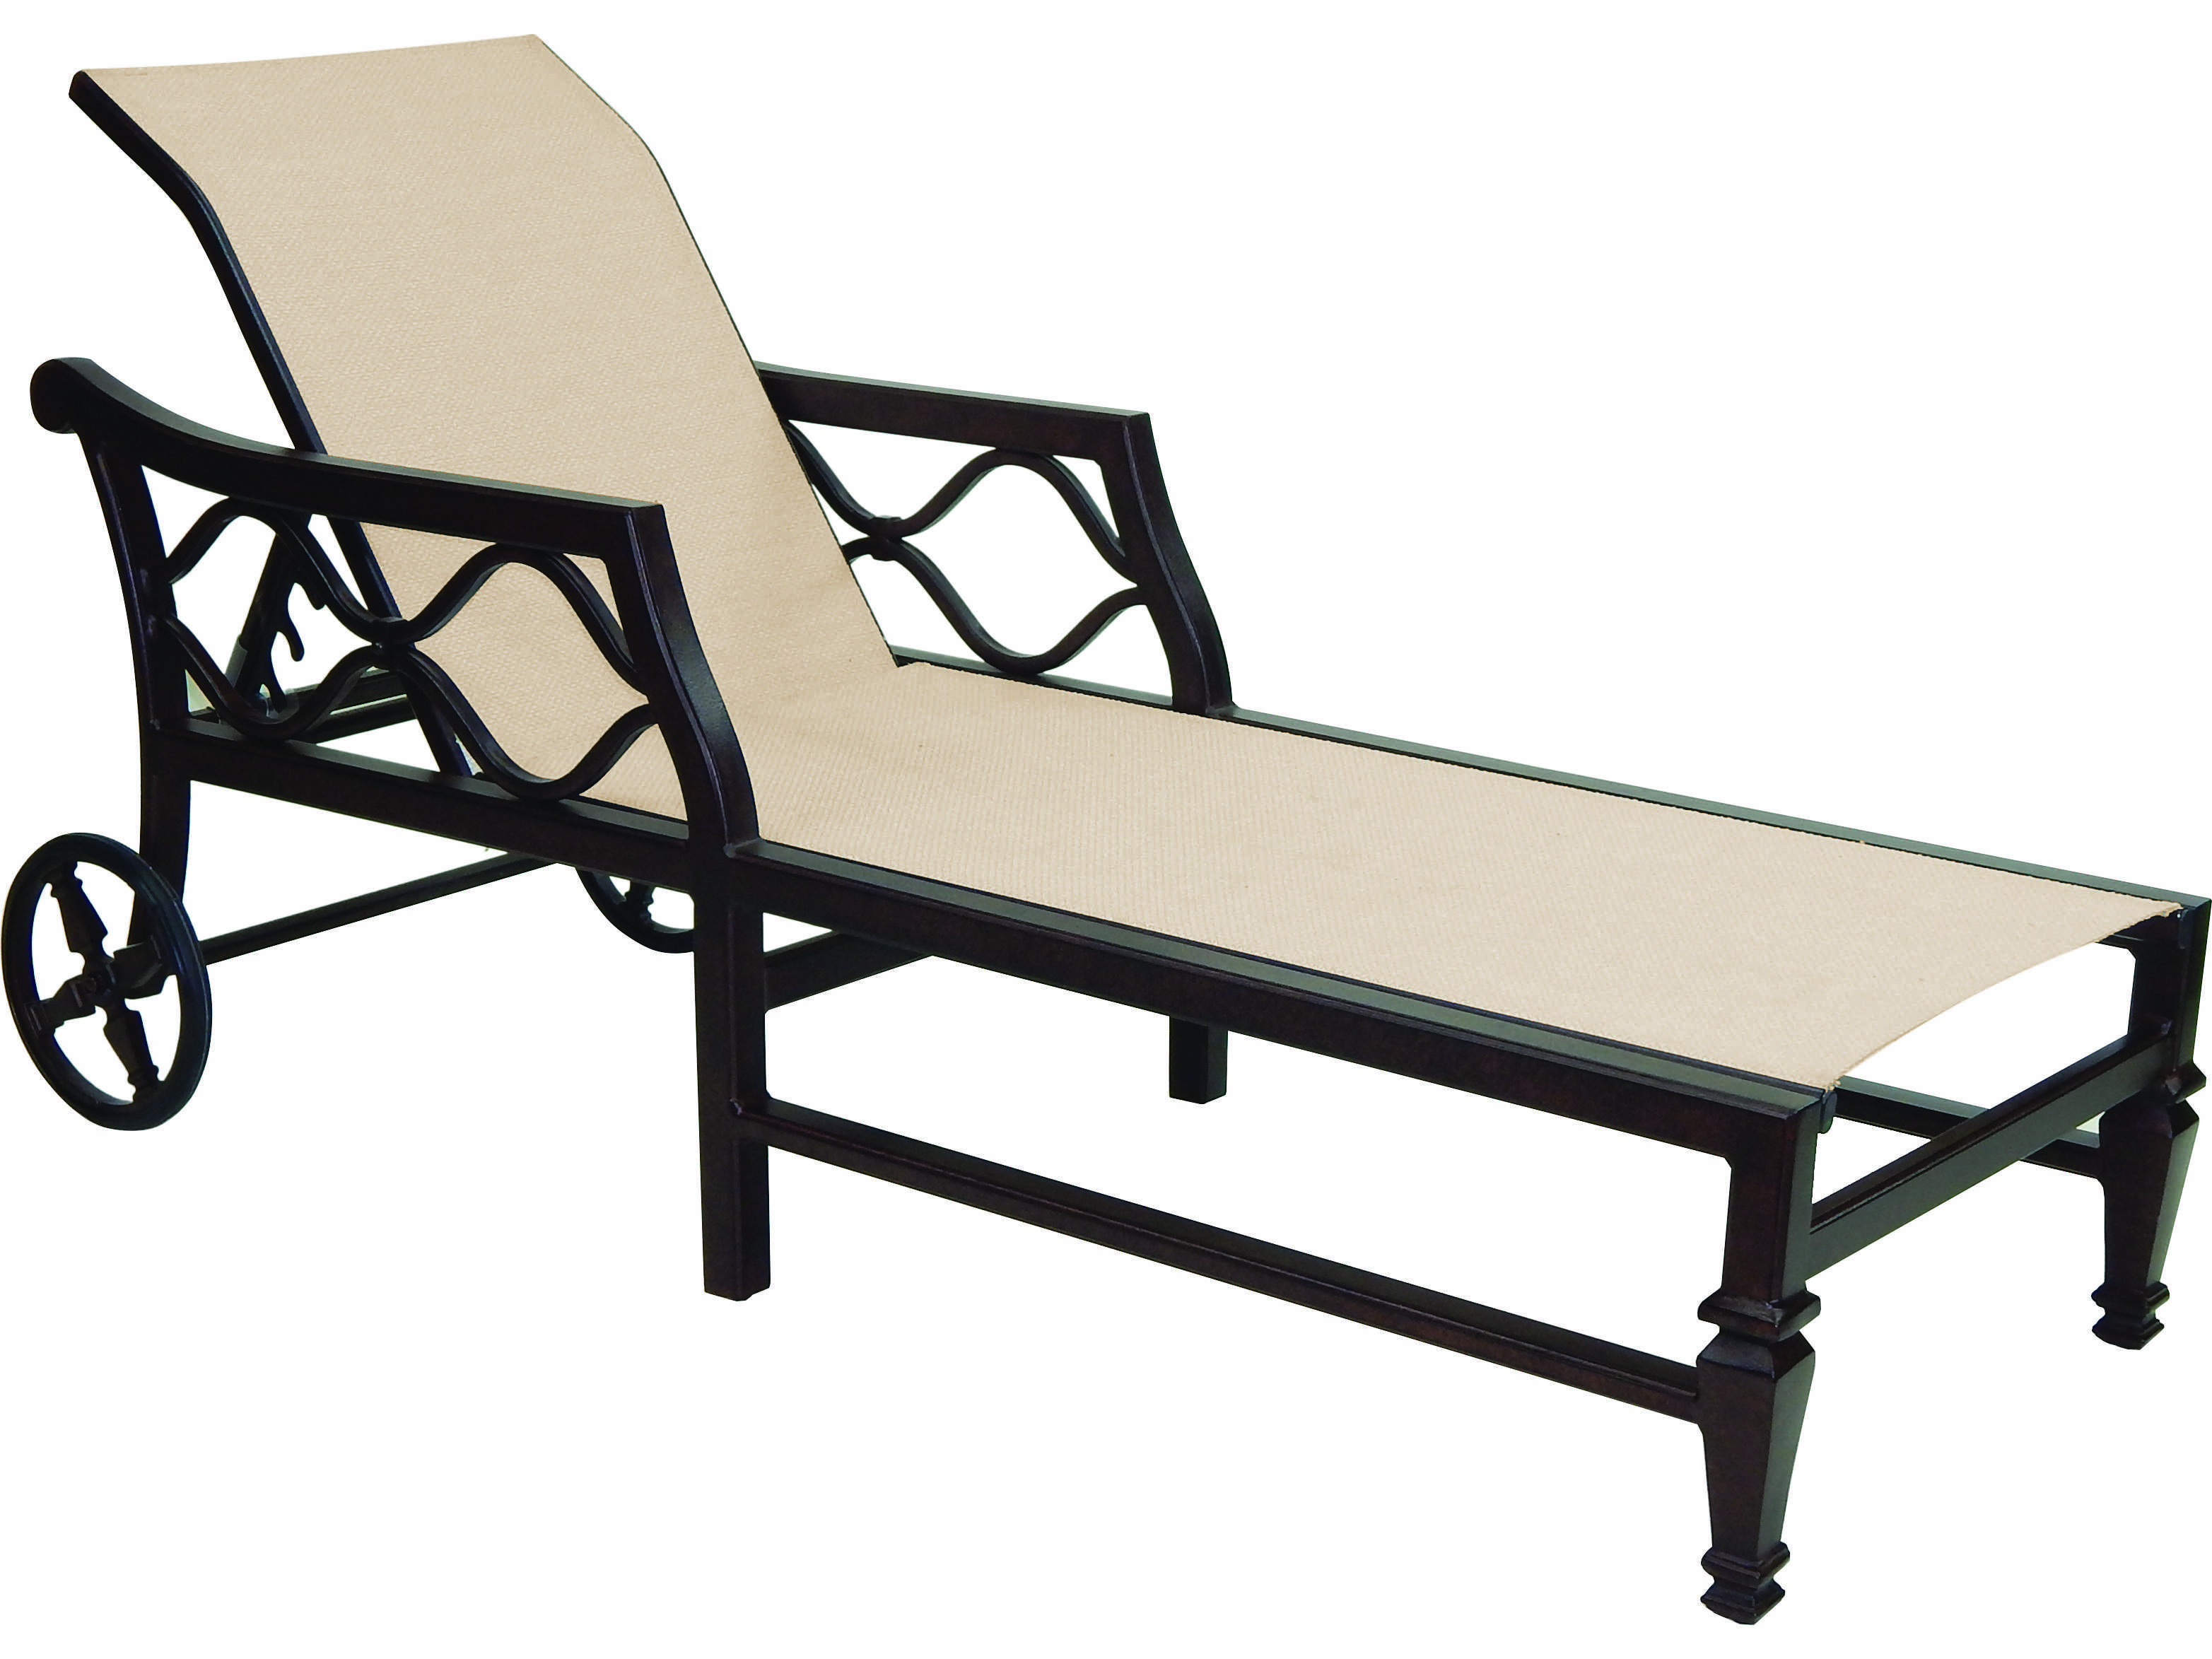 Castelle villa bianca sling cast aluminum adjustable for Aluminum chaise lounge with wheels